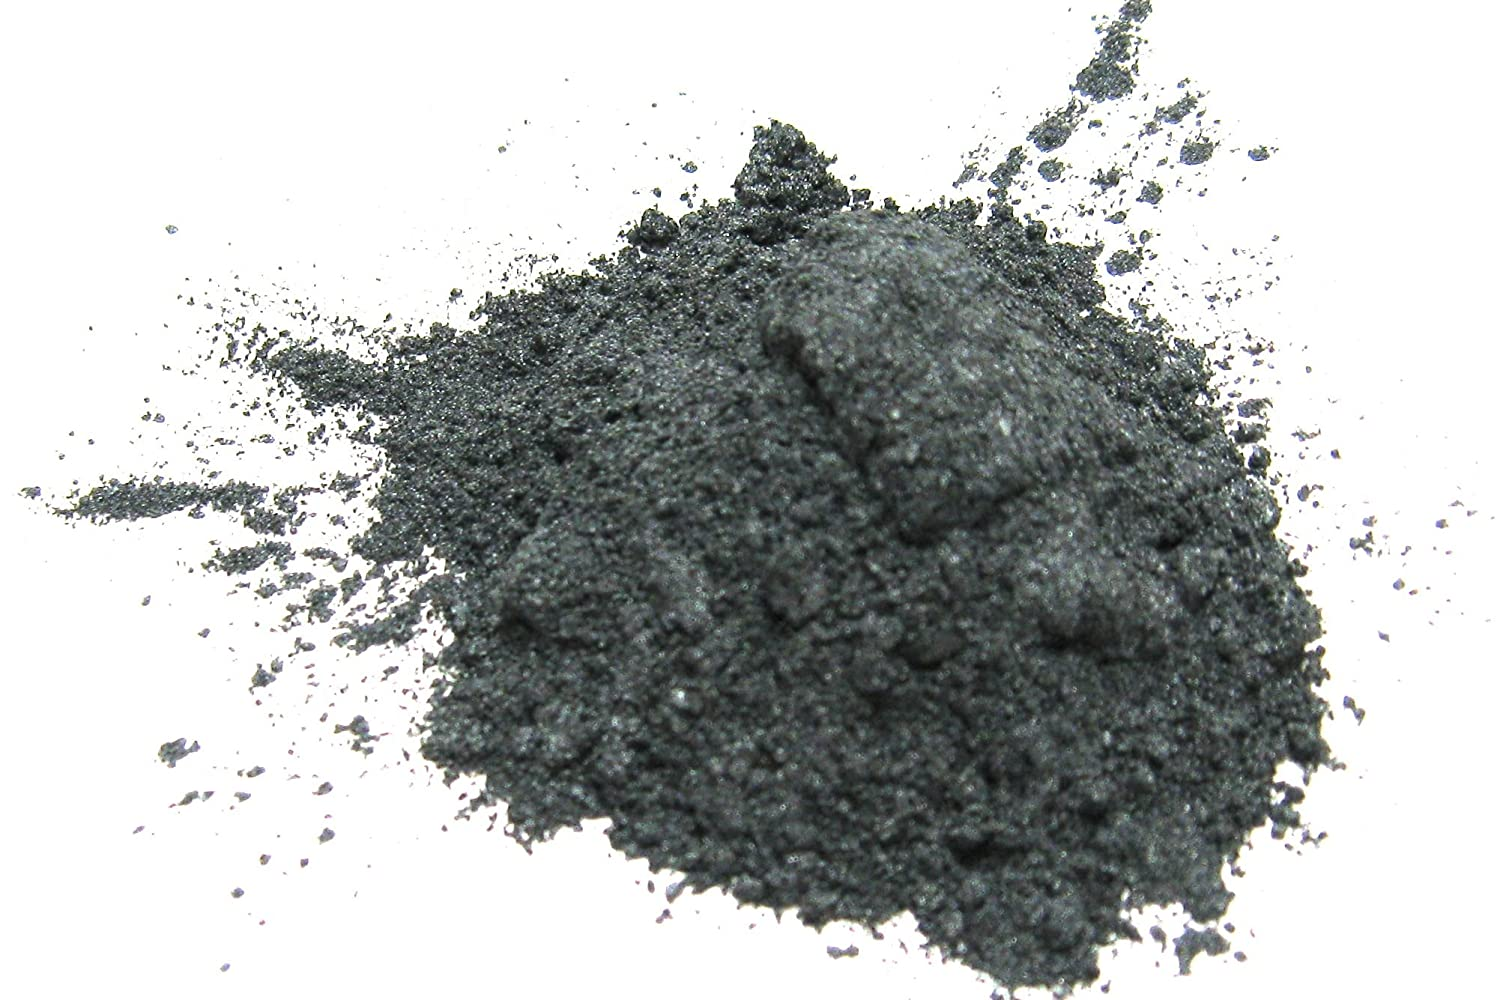 Silver Gray Mica Powder15 grams, Gray Metallic Powder, Cosmetic Mica Powder for Lipsticks, Lip Balm, Bath bombs and More, Slice of the Moon EKS Entertainment Group